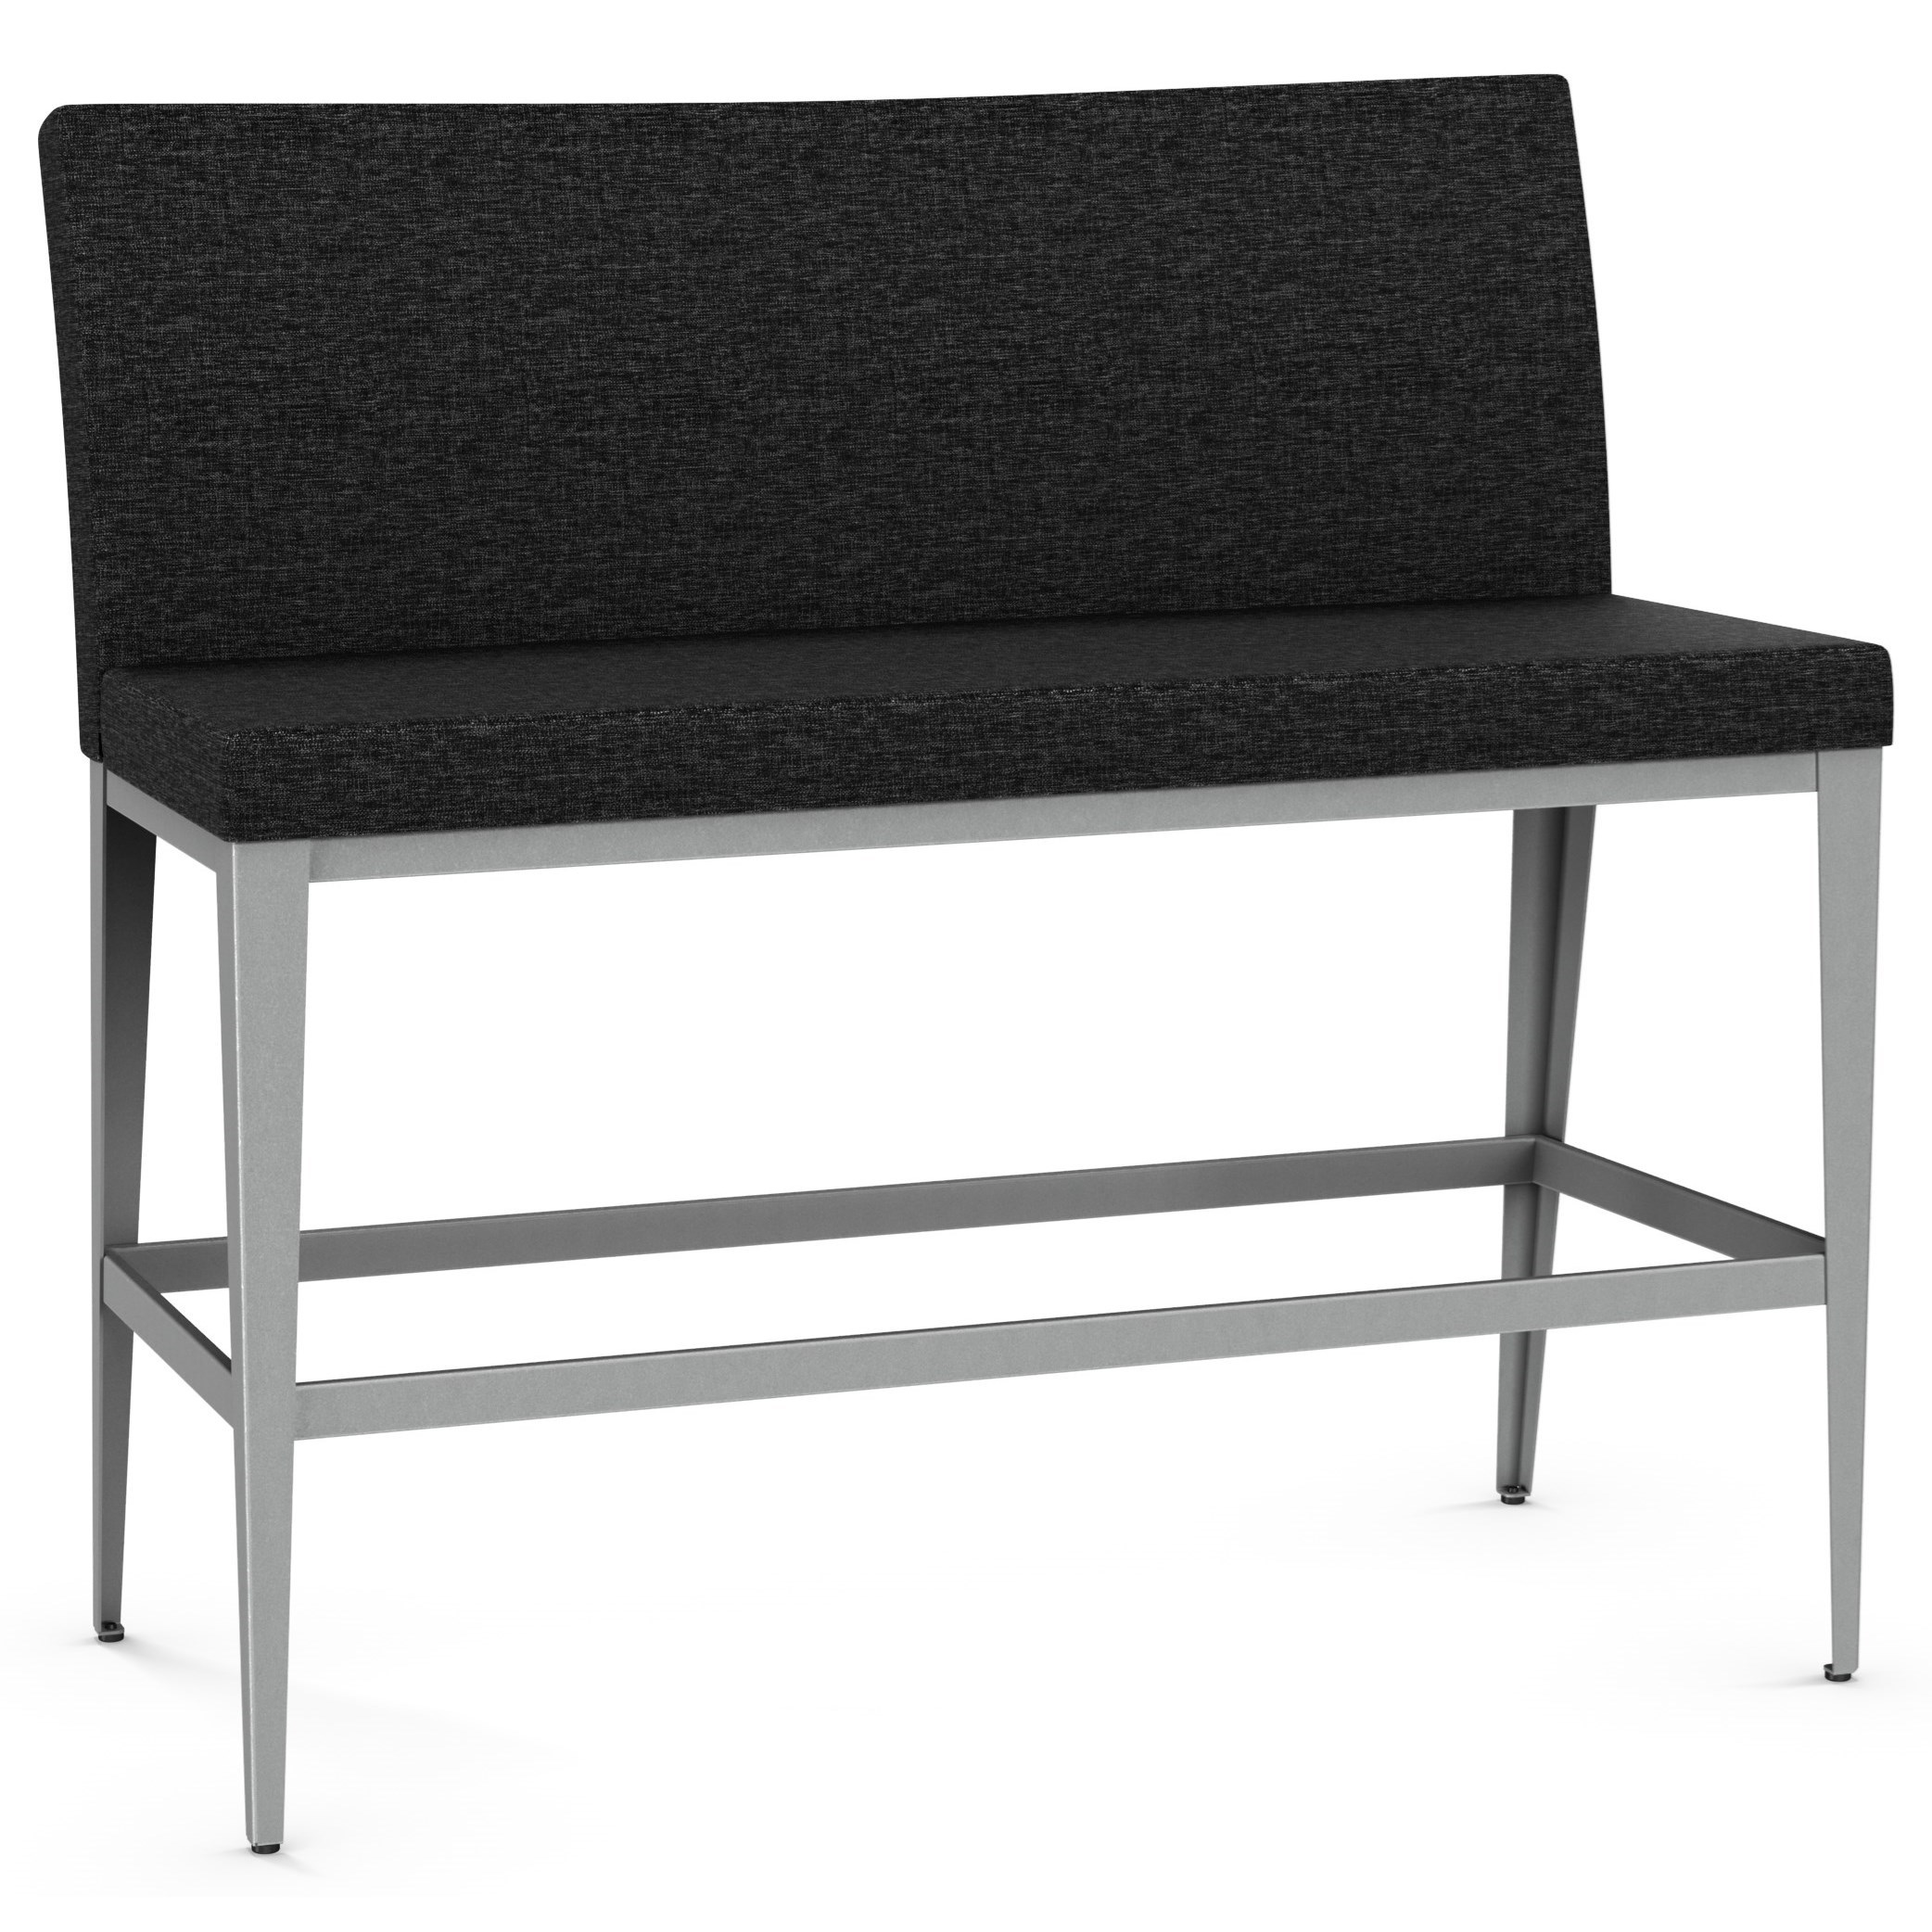 Urban Bar Height Pablo Bench by Amisco at Rooms and Rest